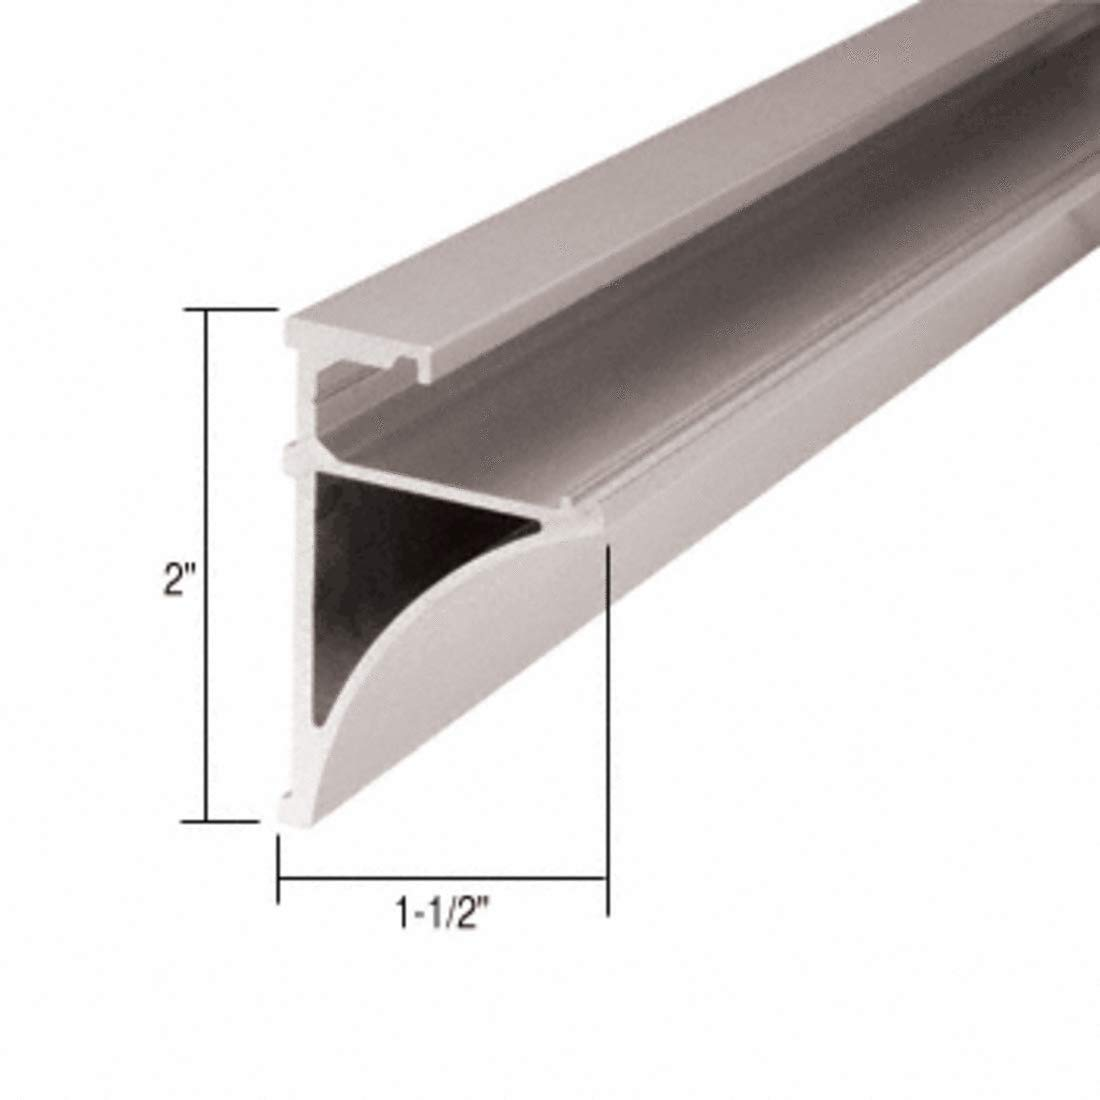 C.R. LAURENCE SE1496BN CRL Brushed Nickel 96'' Aluminum Shelving Extrusion for 1/4'' Glass